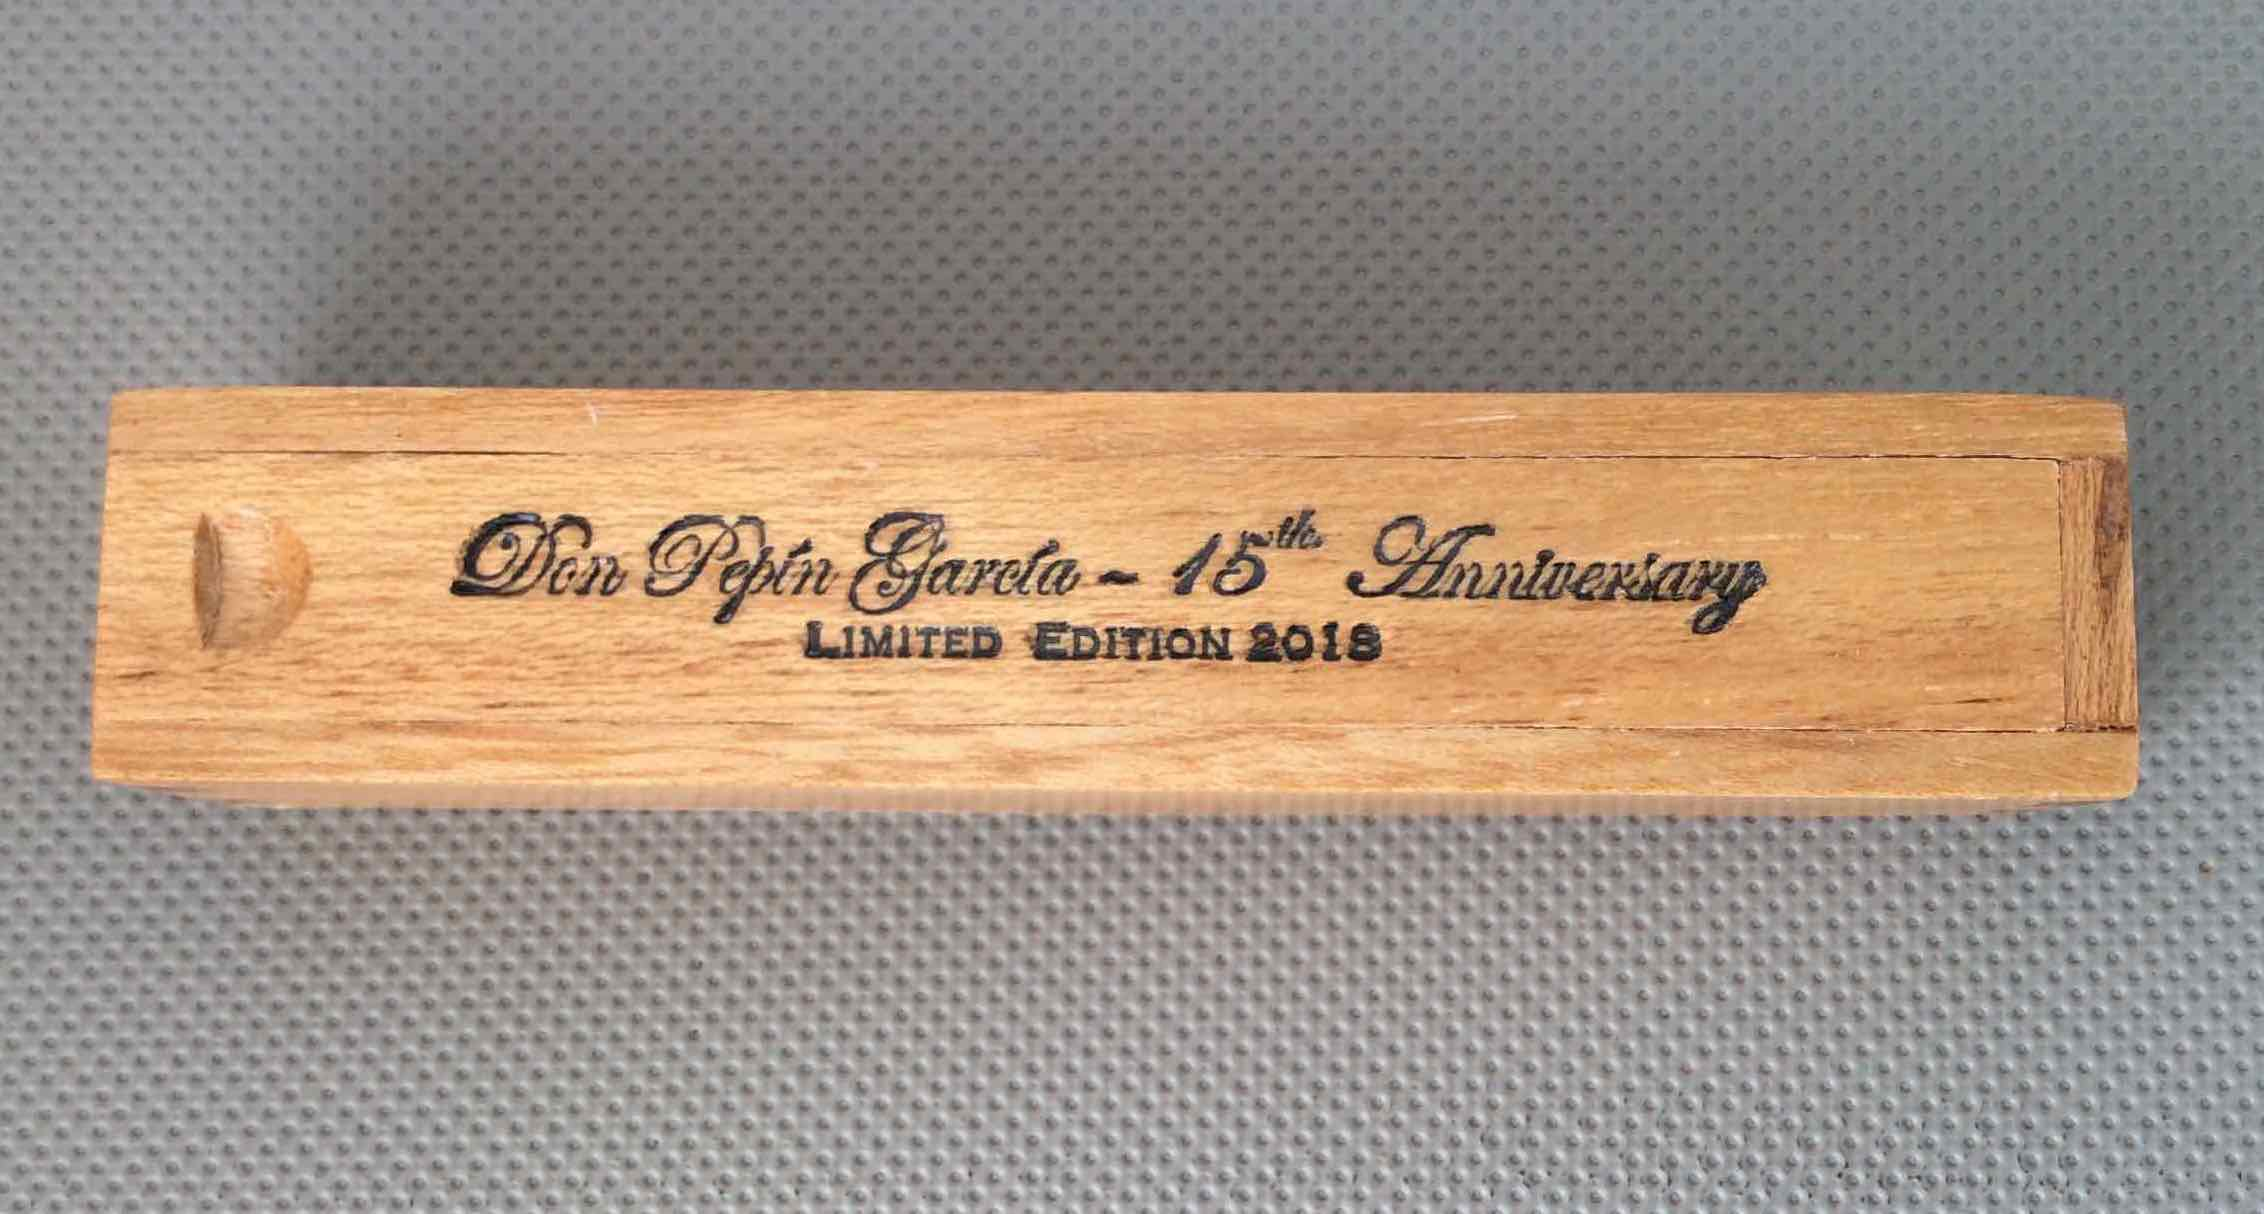 Coffin packaging of the Don Pepin Garcia 15th Anniversary Limited Edition 2018 Robusto